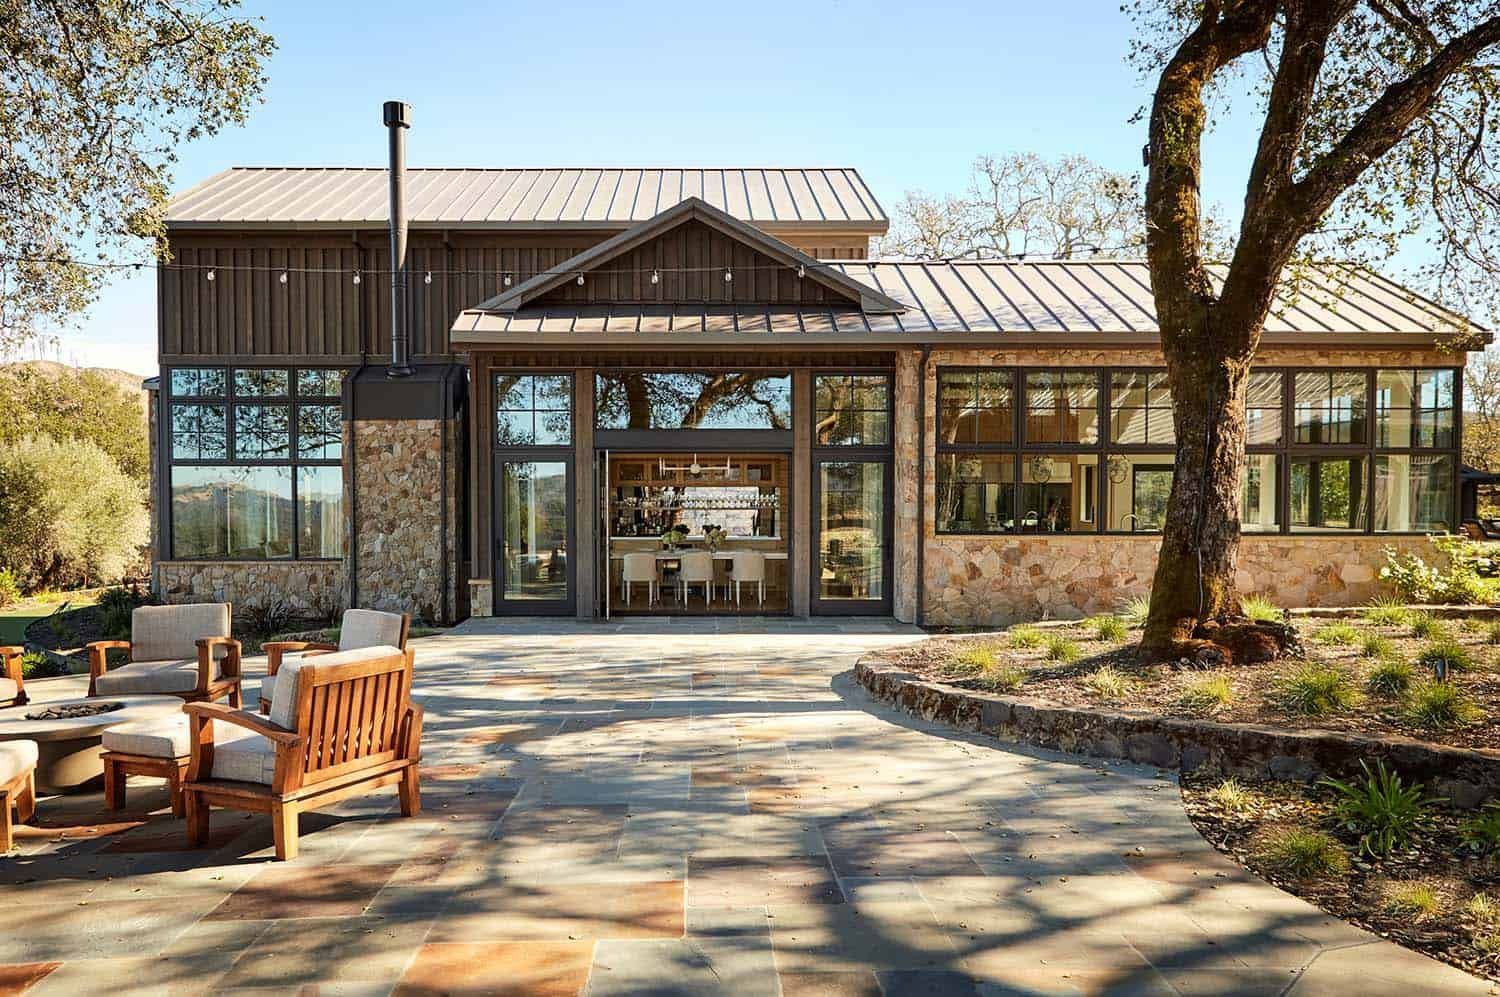 Tour this dreamy mountain home ranch in California's Napa Valley